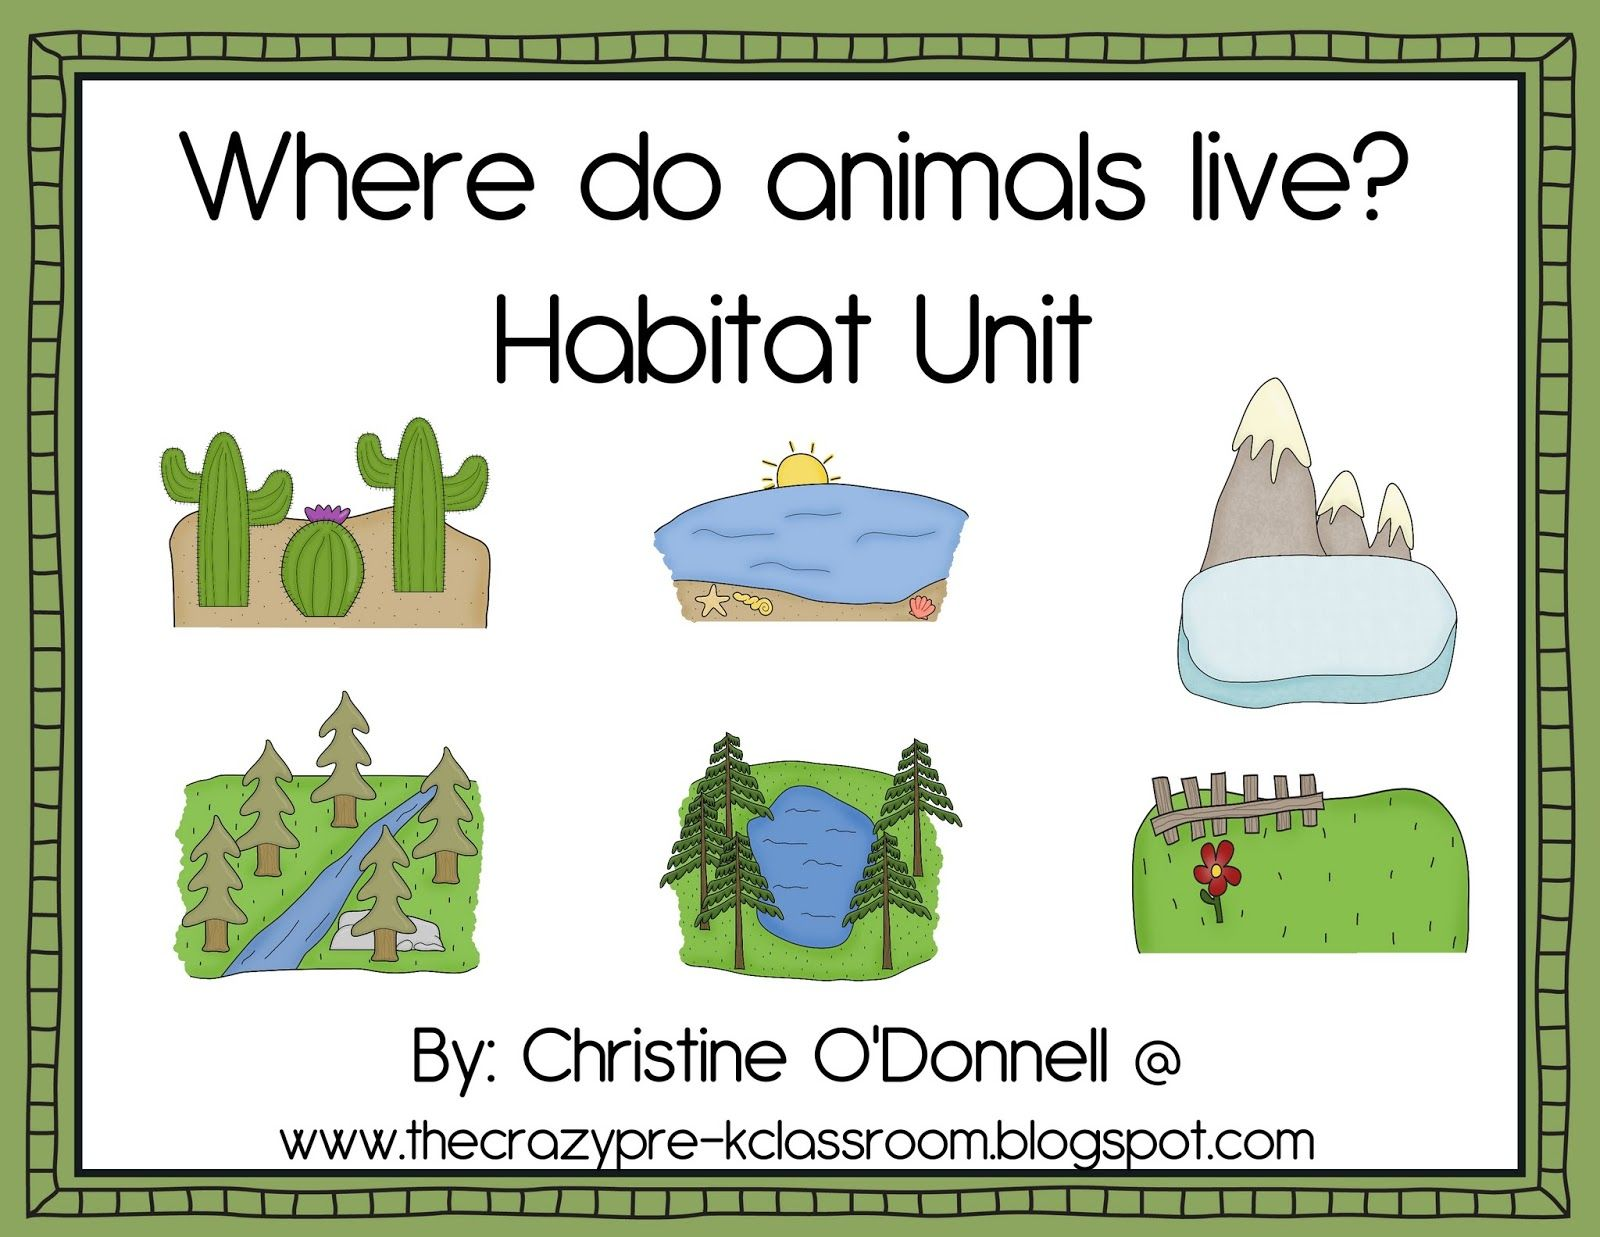 Animal Habitats Printables Product Where Do Animals Live 11 Habitats Animals Minibooks 206p Kindergarten Teachers Animal Habitats Vocabulary Cards